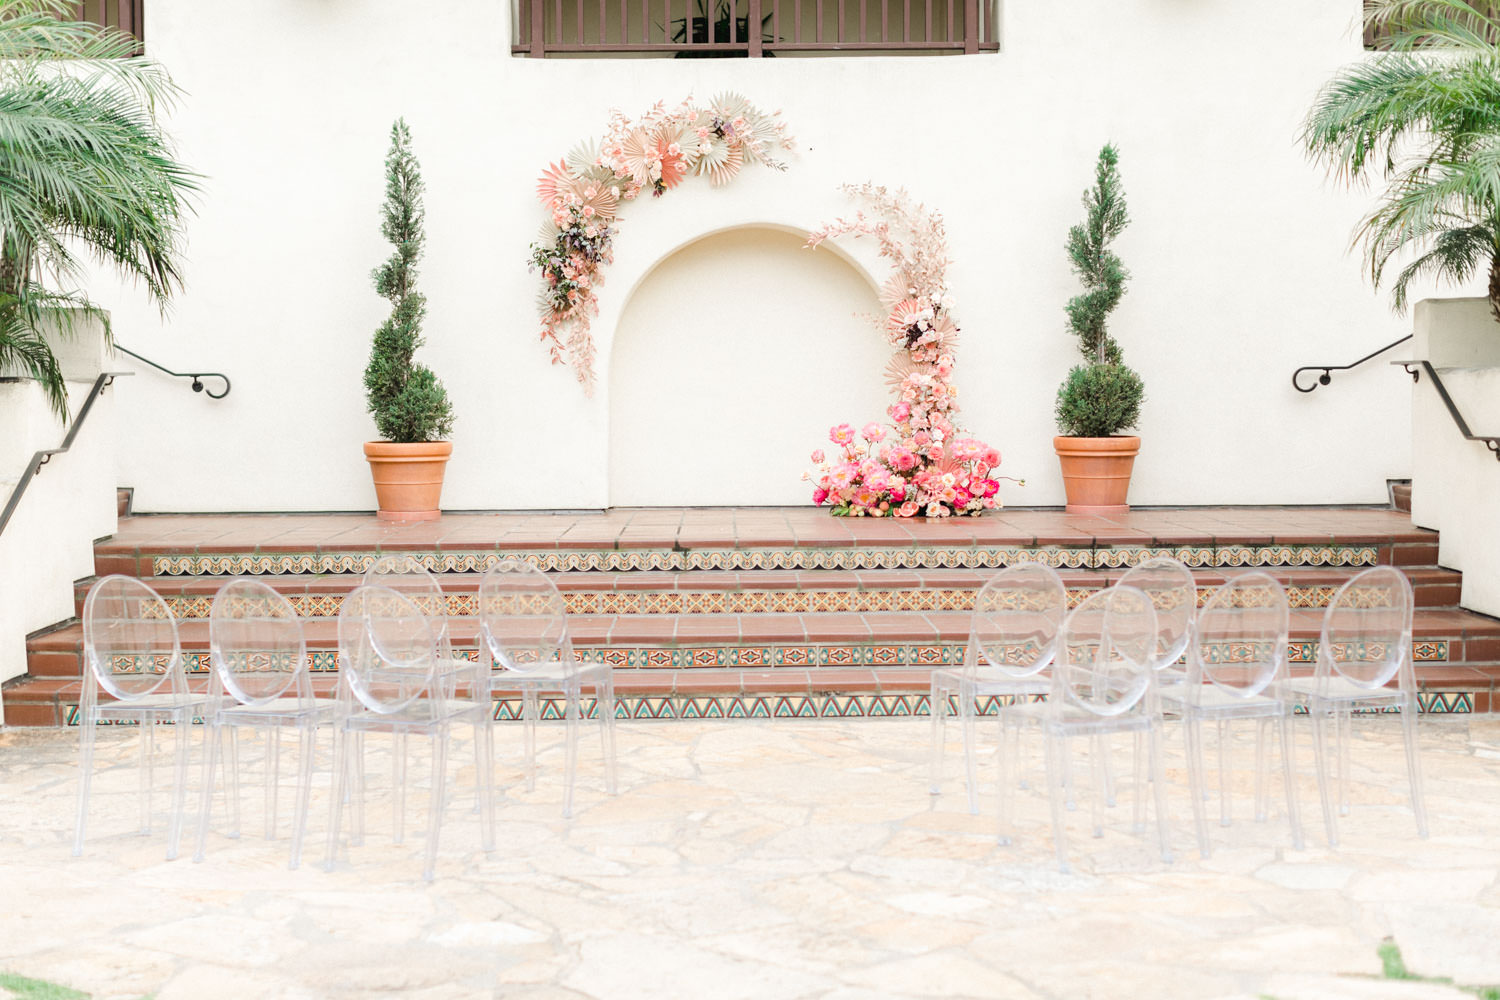 Pink peach and white floral installation over an archway with ghost chairs, Wedding at Estancia La Jolla, Cavin Elizabeth Photography